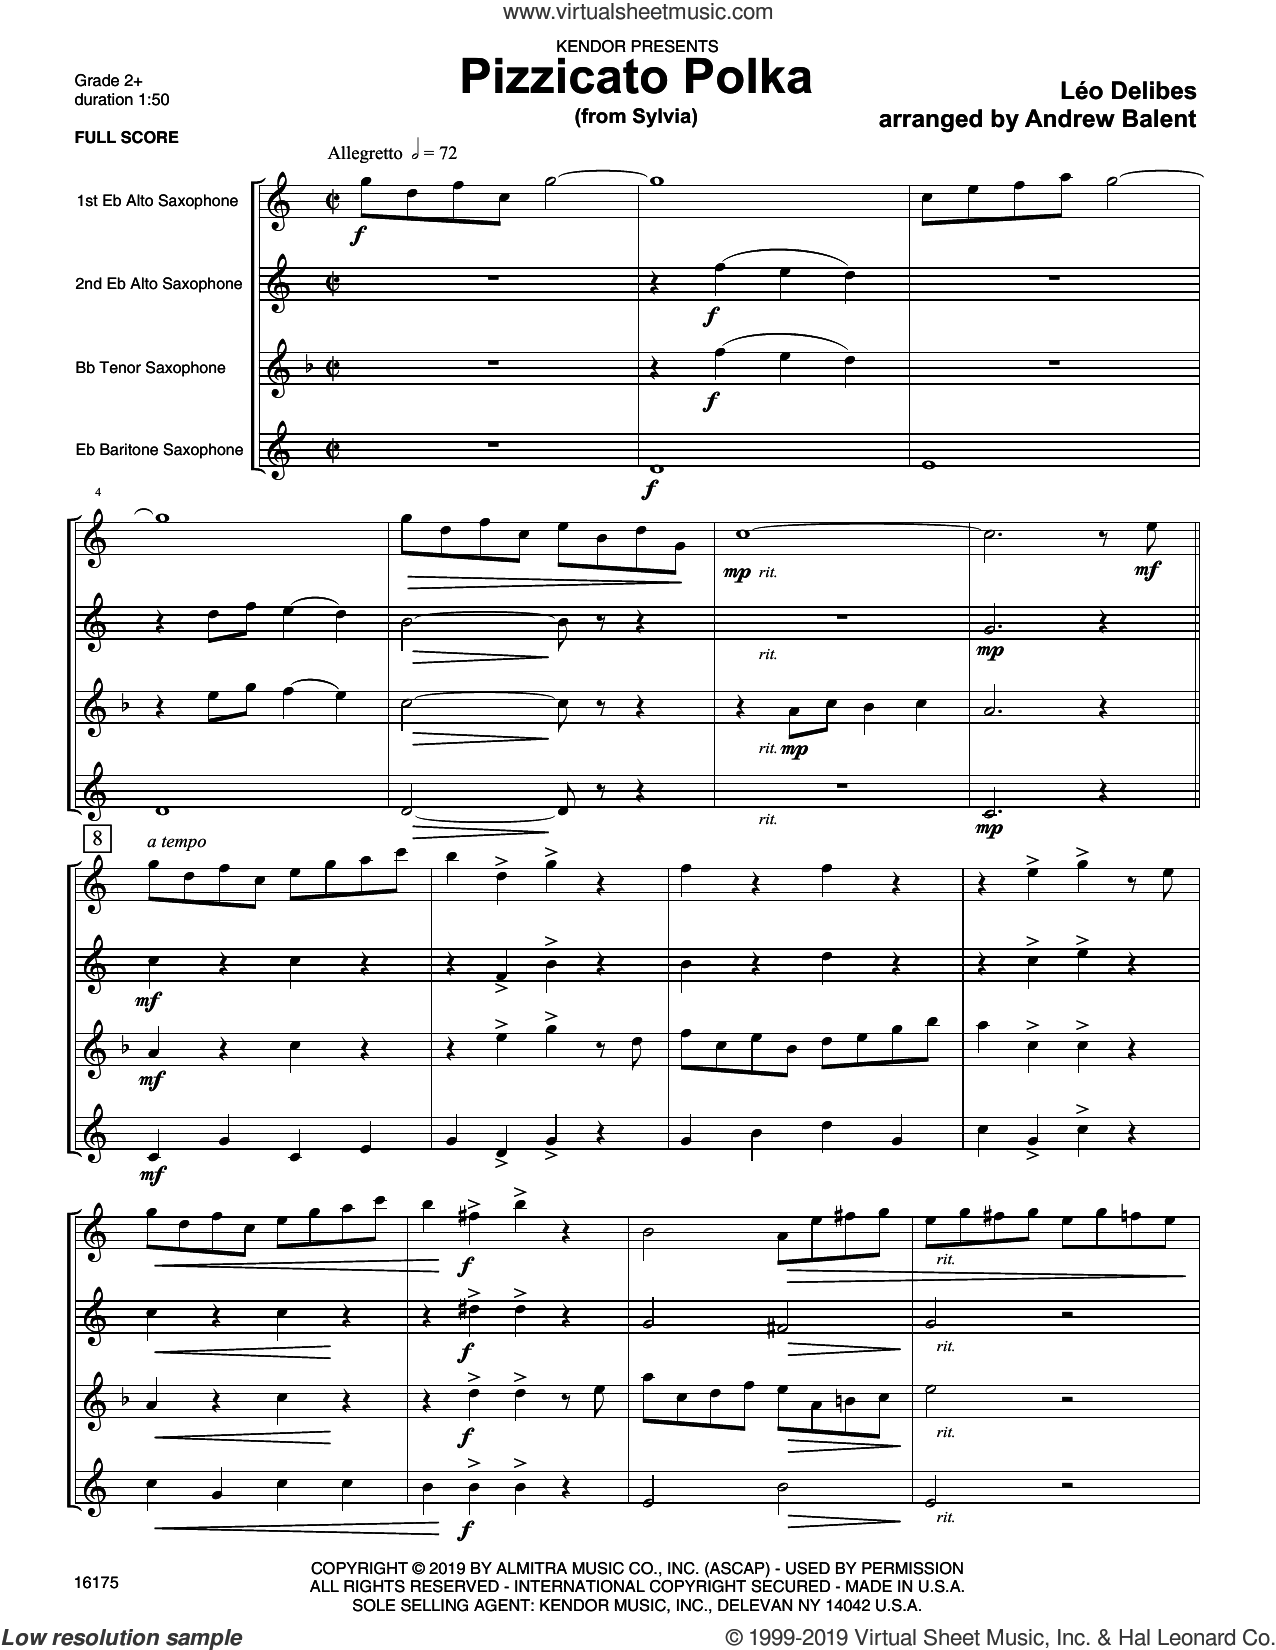 Pizzicato Polka (from Sylvia) (COMPLETE) sheet music for saxophone quartet by Leo Delibes and Andrew Balent, intermediate skill level